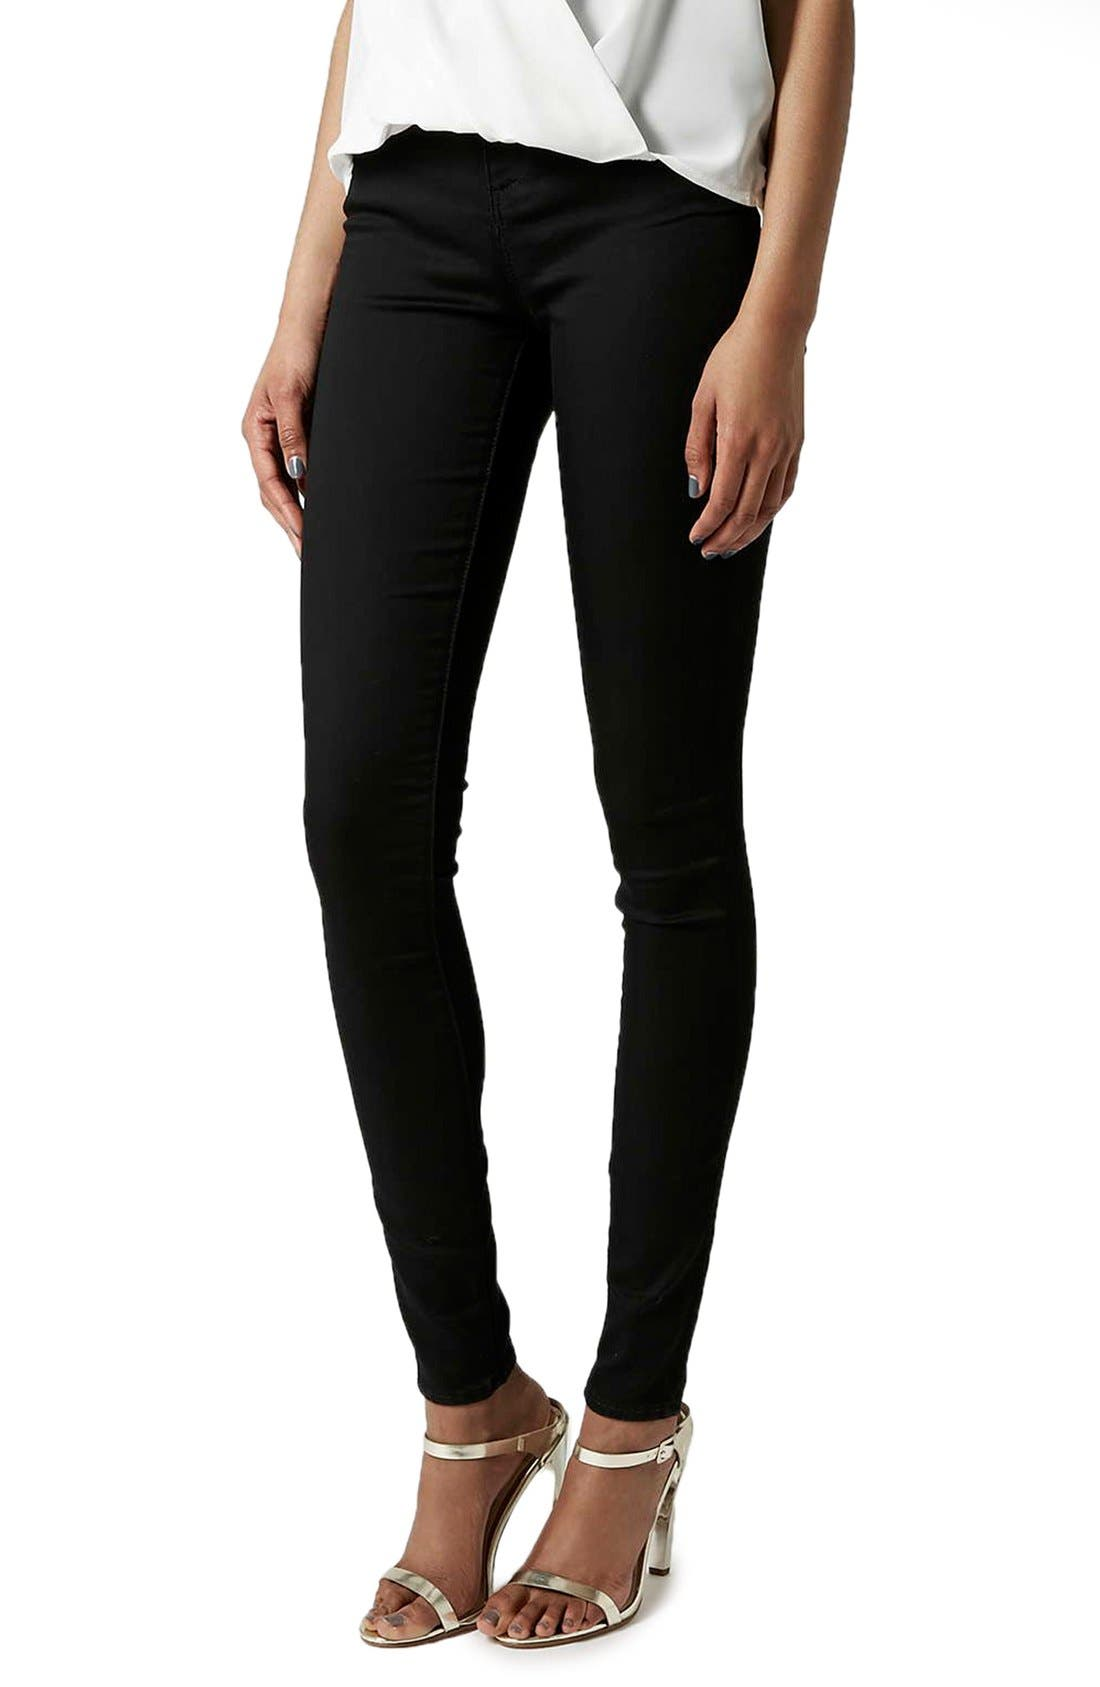 Main Image - Topshop 'Leigh' High Rise Skinny Jeans (Tall)